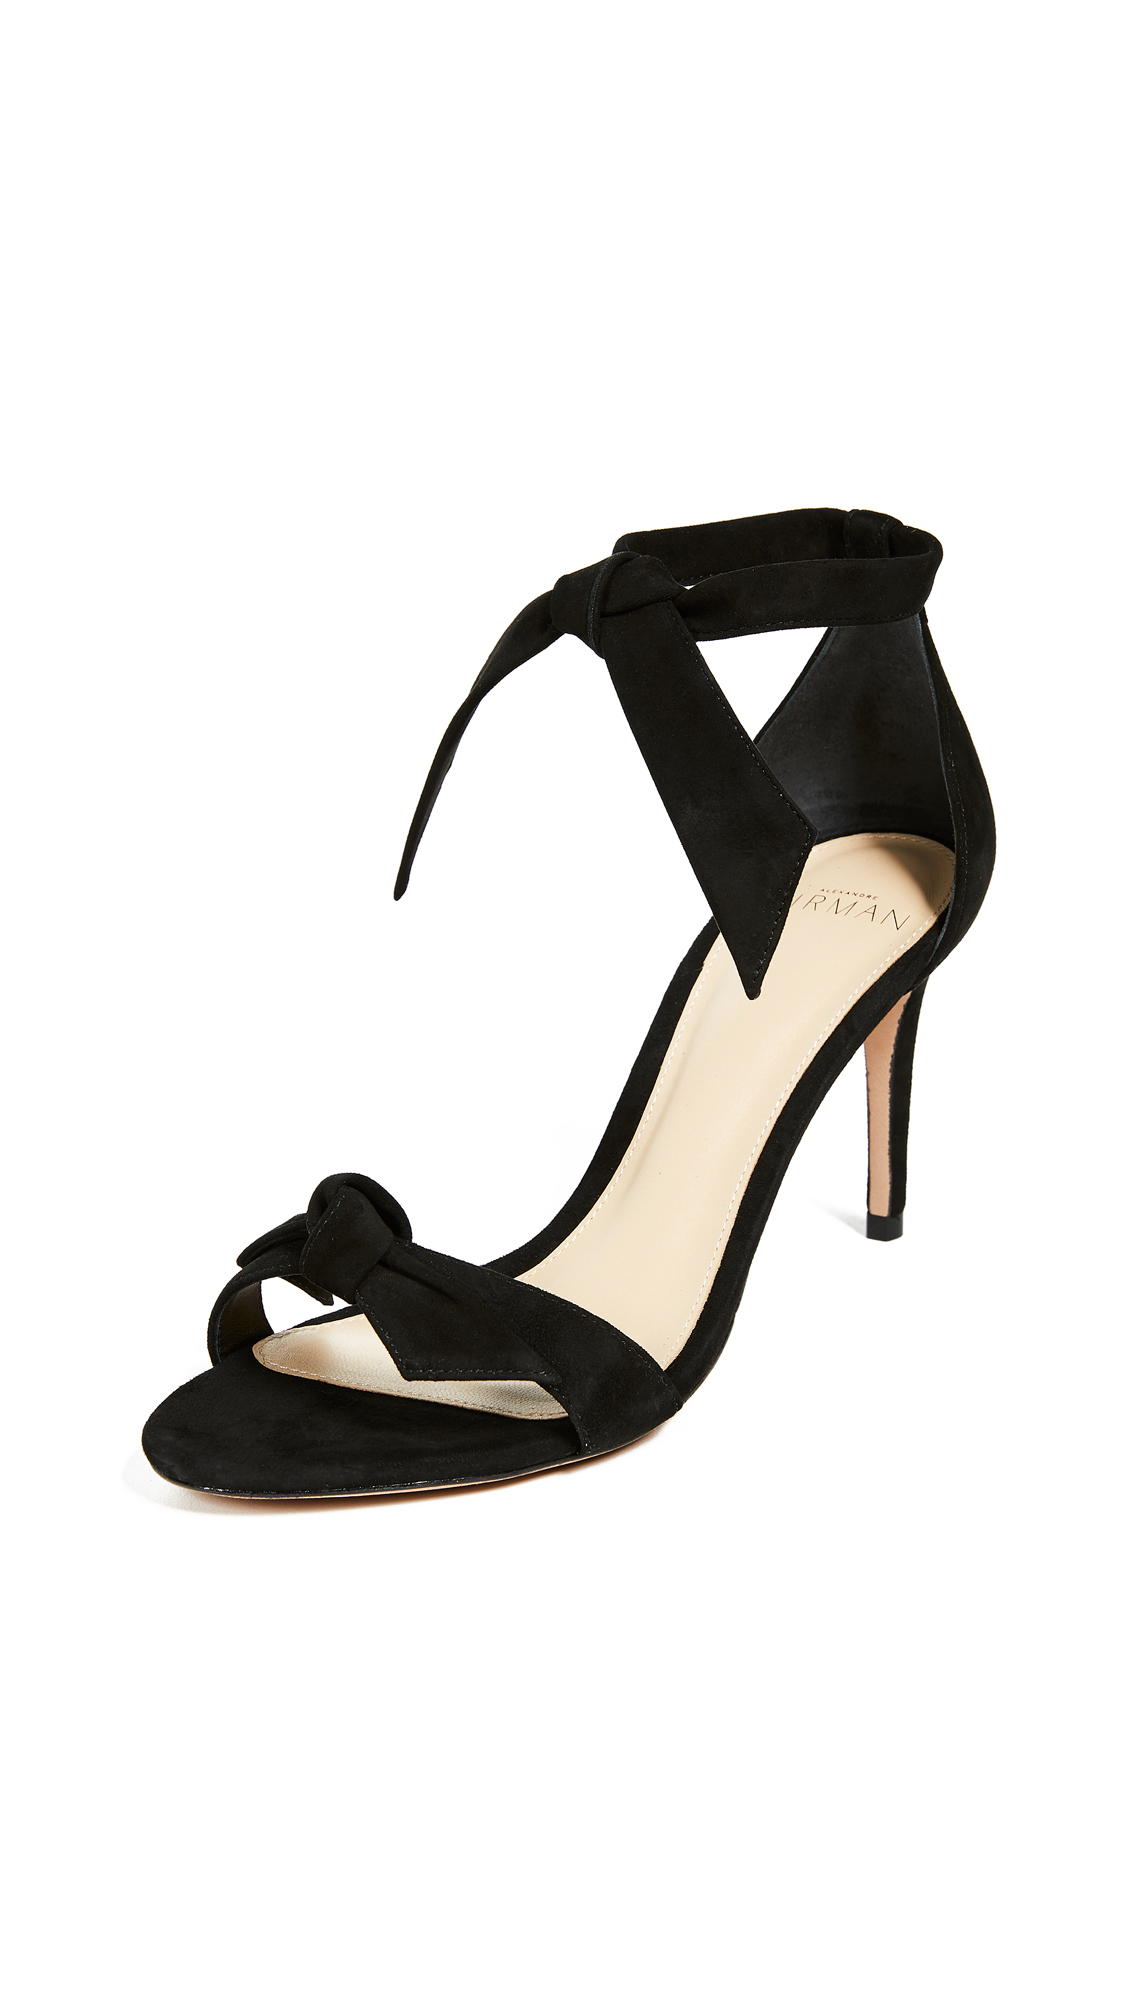 Alexandre Birman Patty Sandals - Black